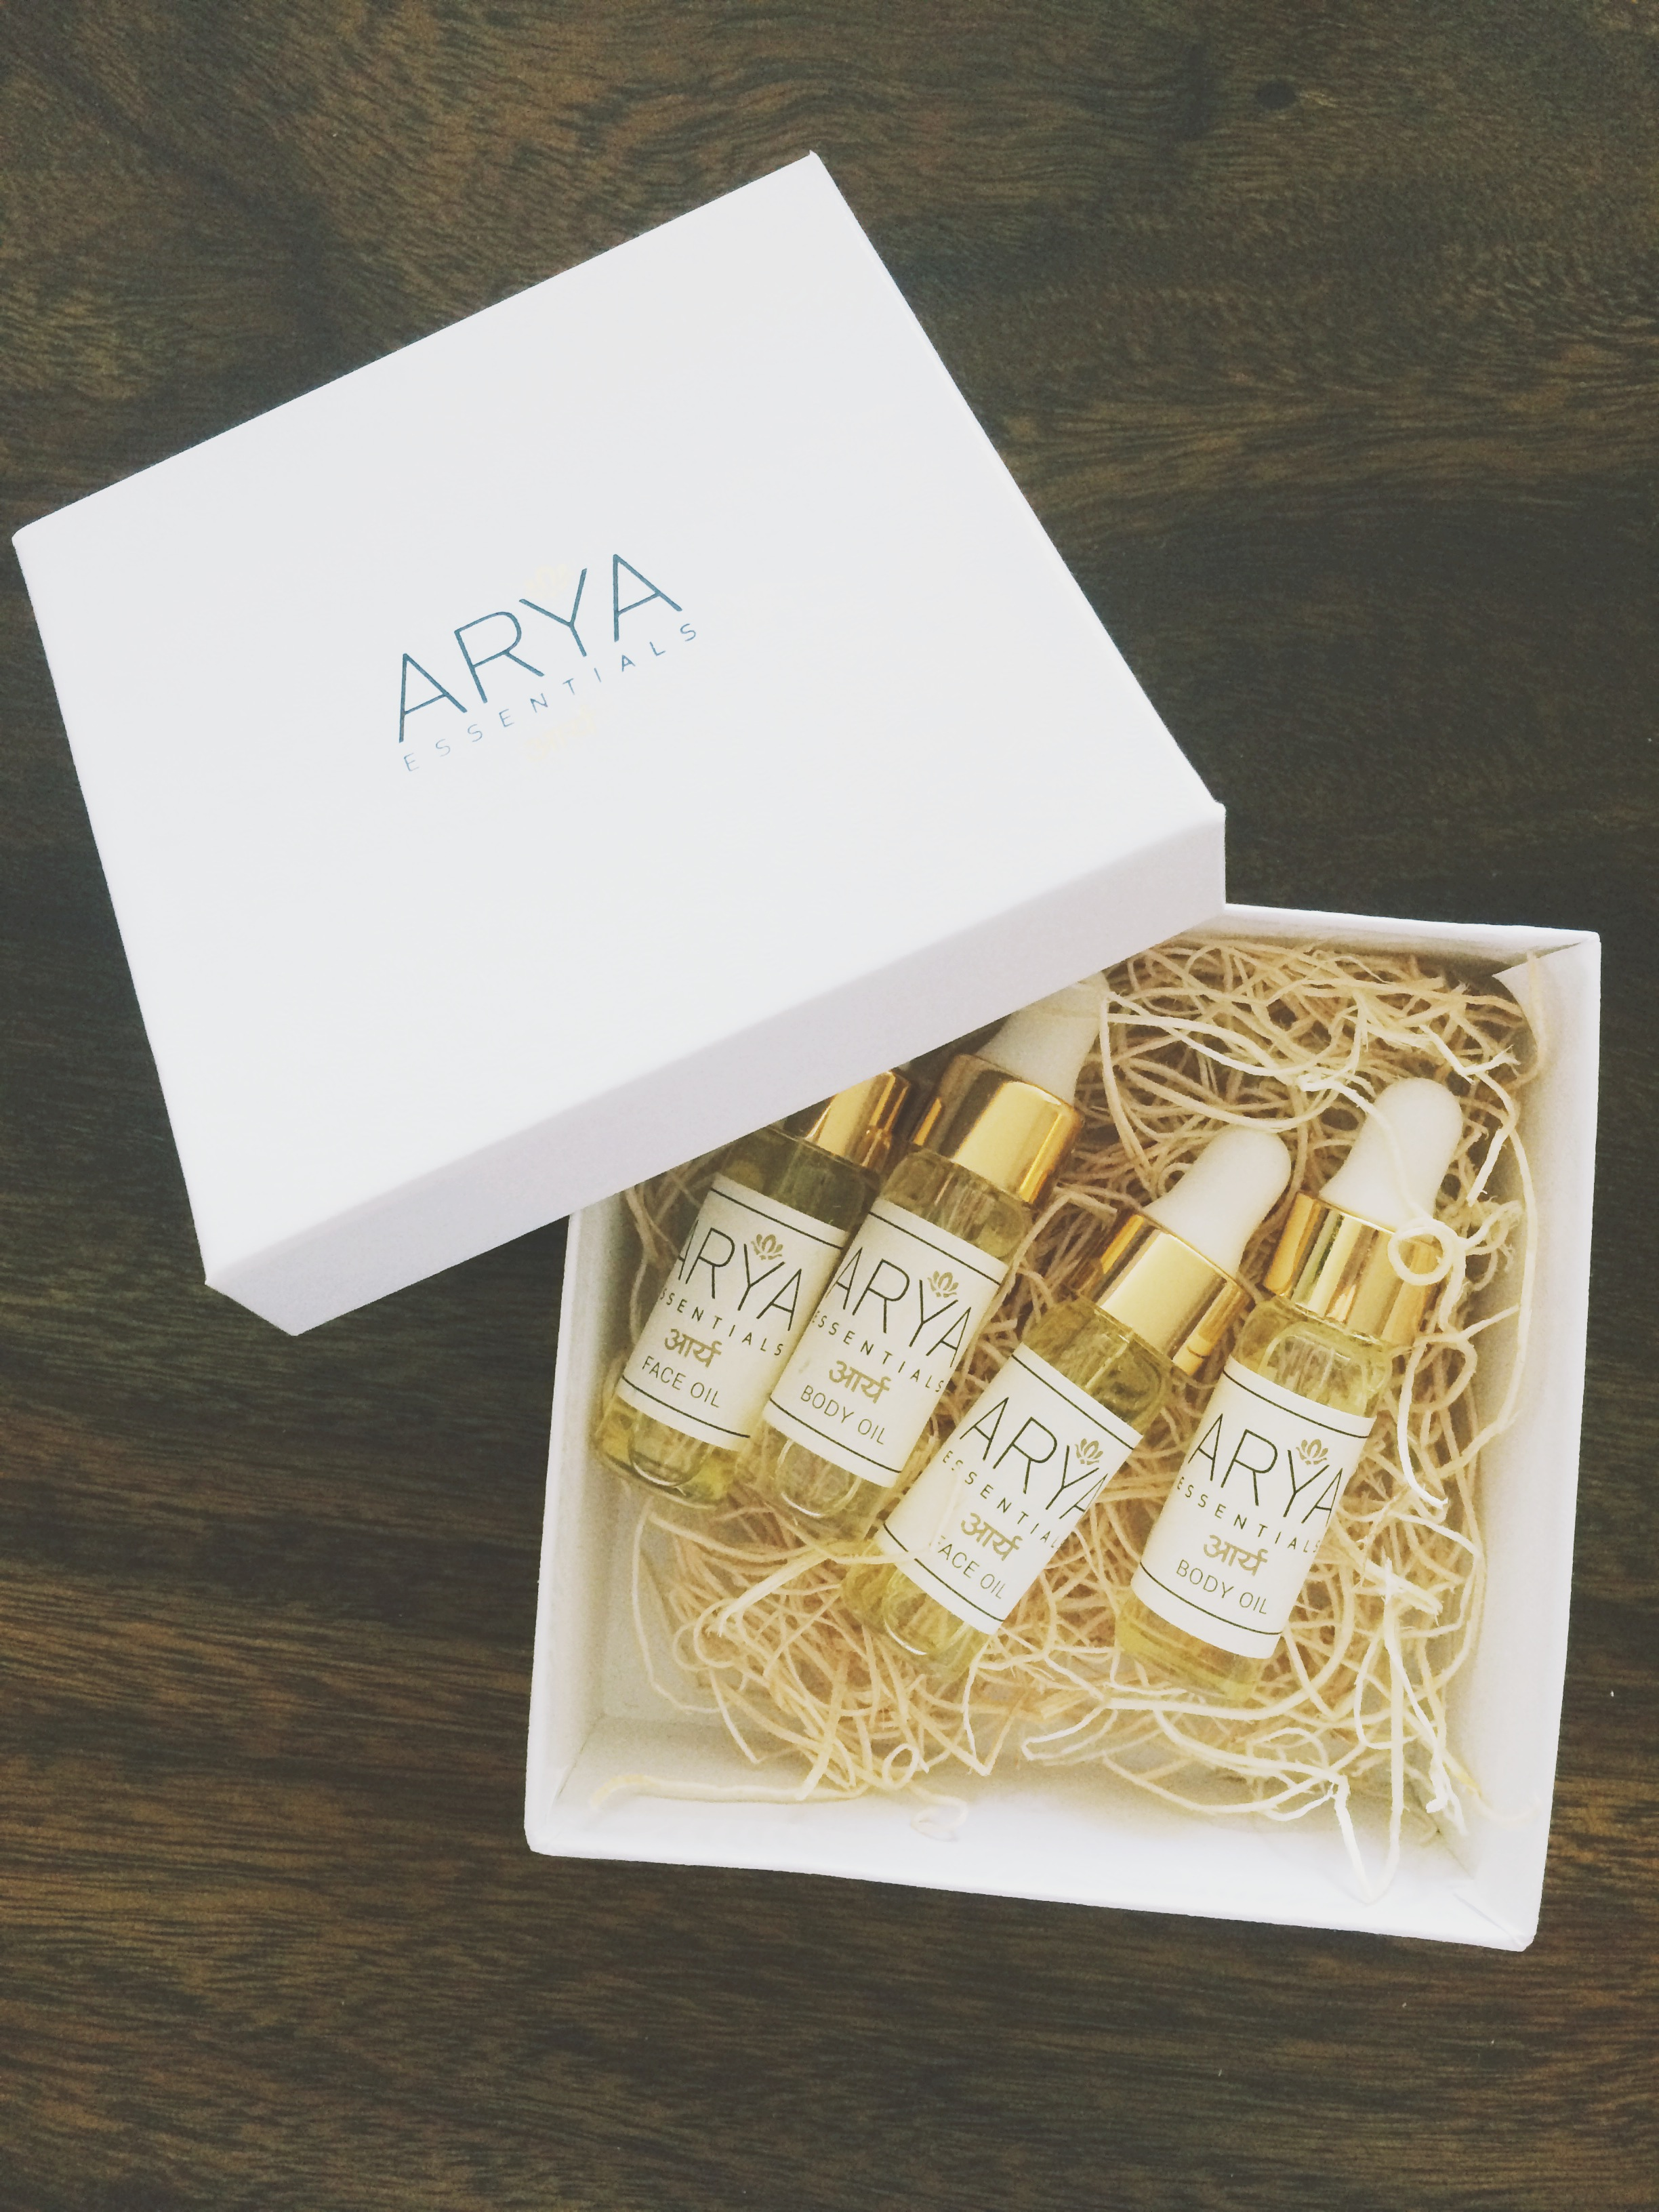 Arya Essentials Oils | The Organic Beauty